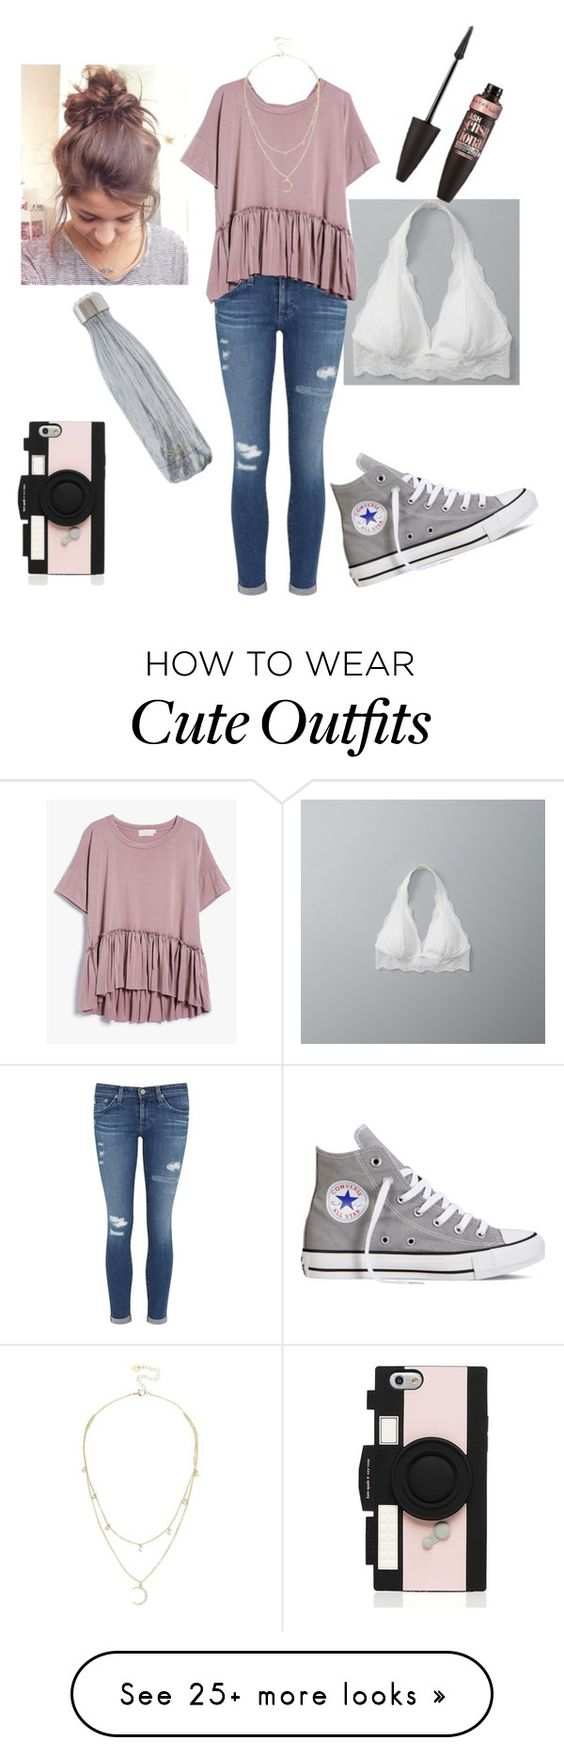 """School outfit #4"" by a-backlund on Polyvore featuring Abercrombie & Fitch, AG Adriano Goldschmied, Converse, S'well, Maybelline, Lipsy and Kate Spade"